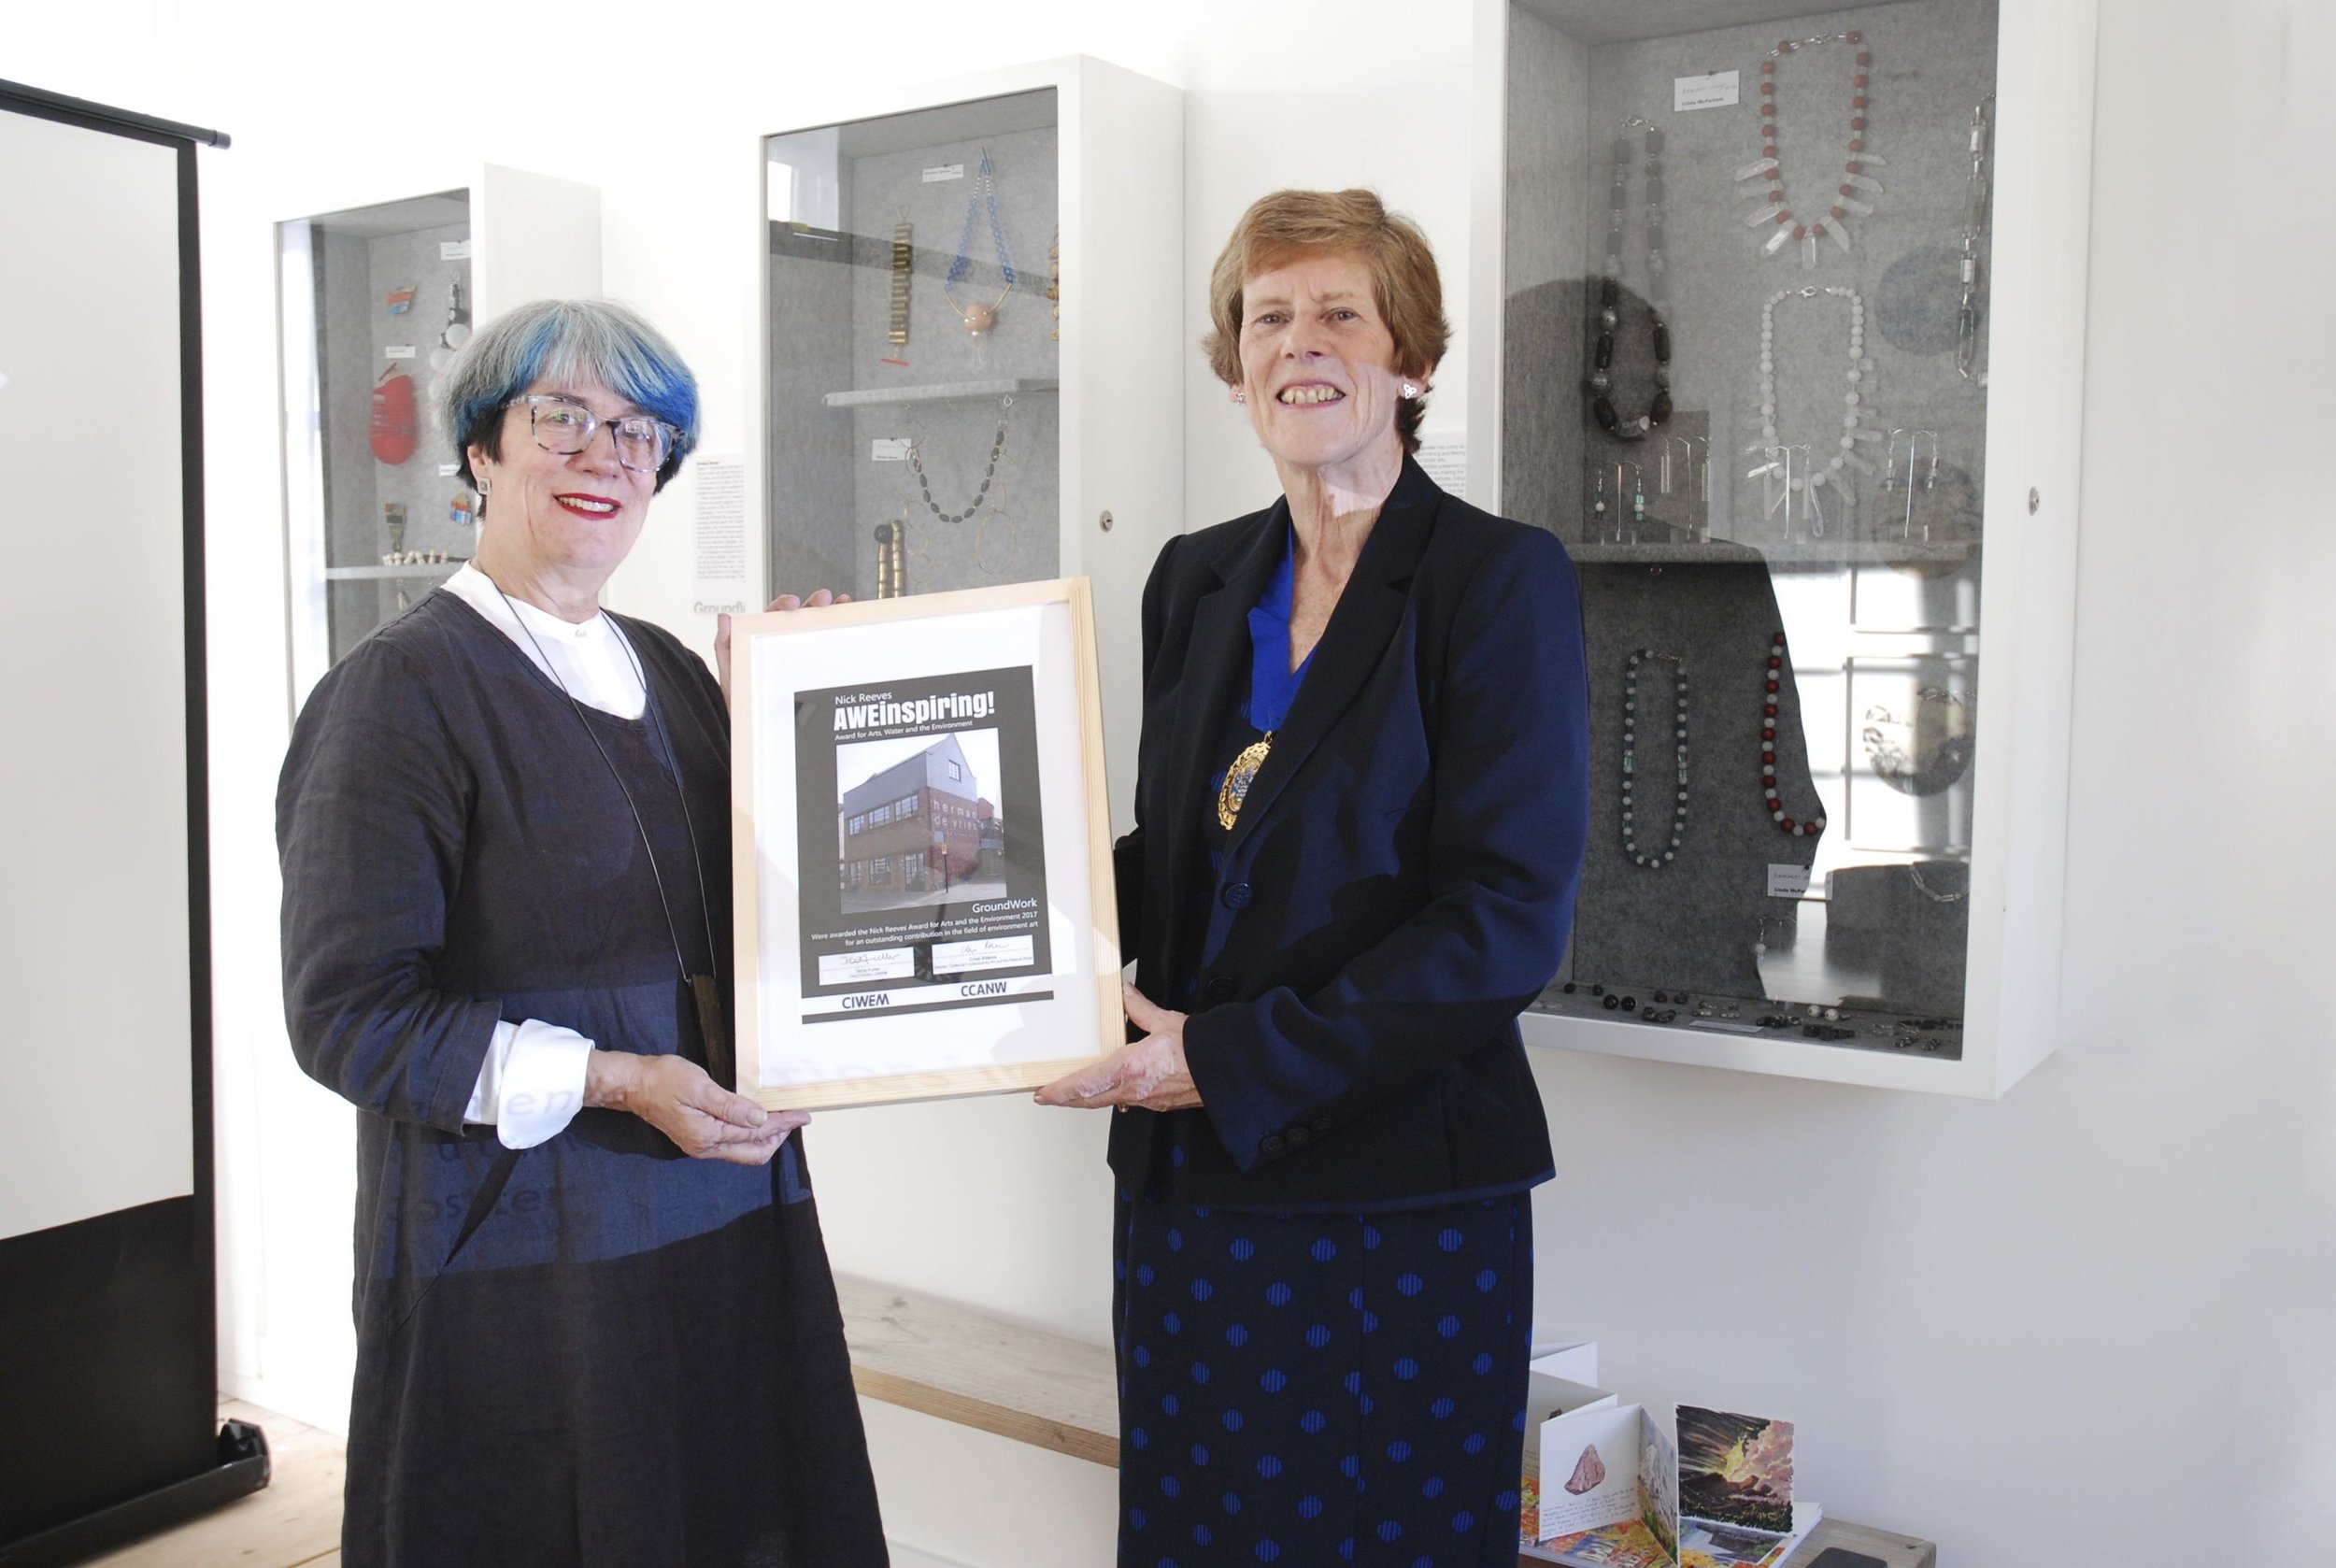 Dr Veronica Sekules, Director of GroundWork Gallery receiving the Nick Reeves Award from Angela Gray, President of CIWEM